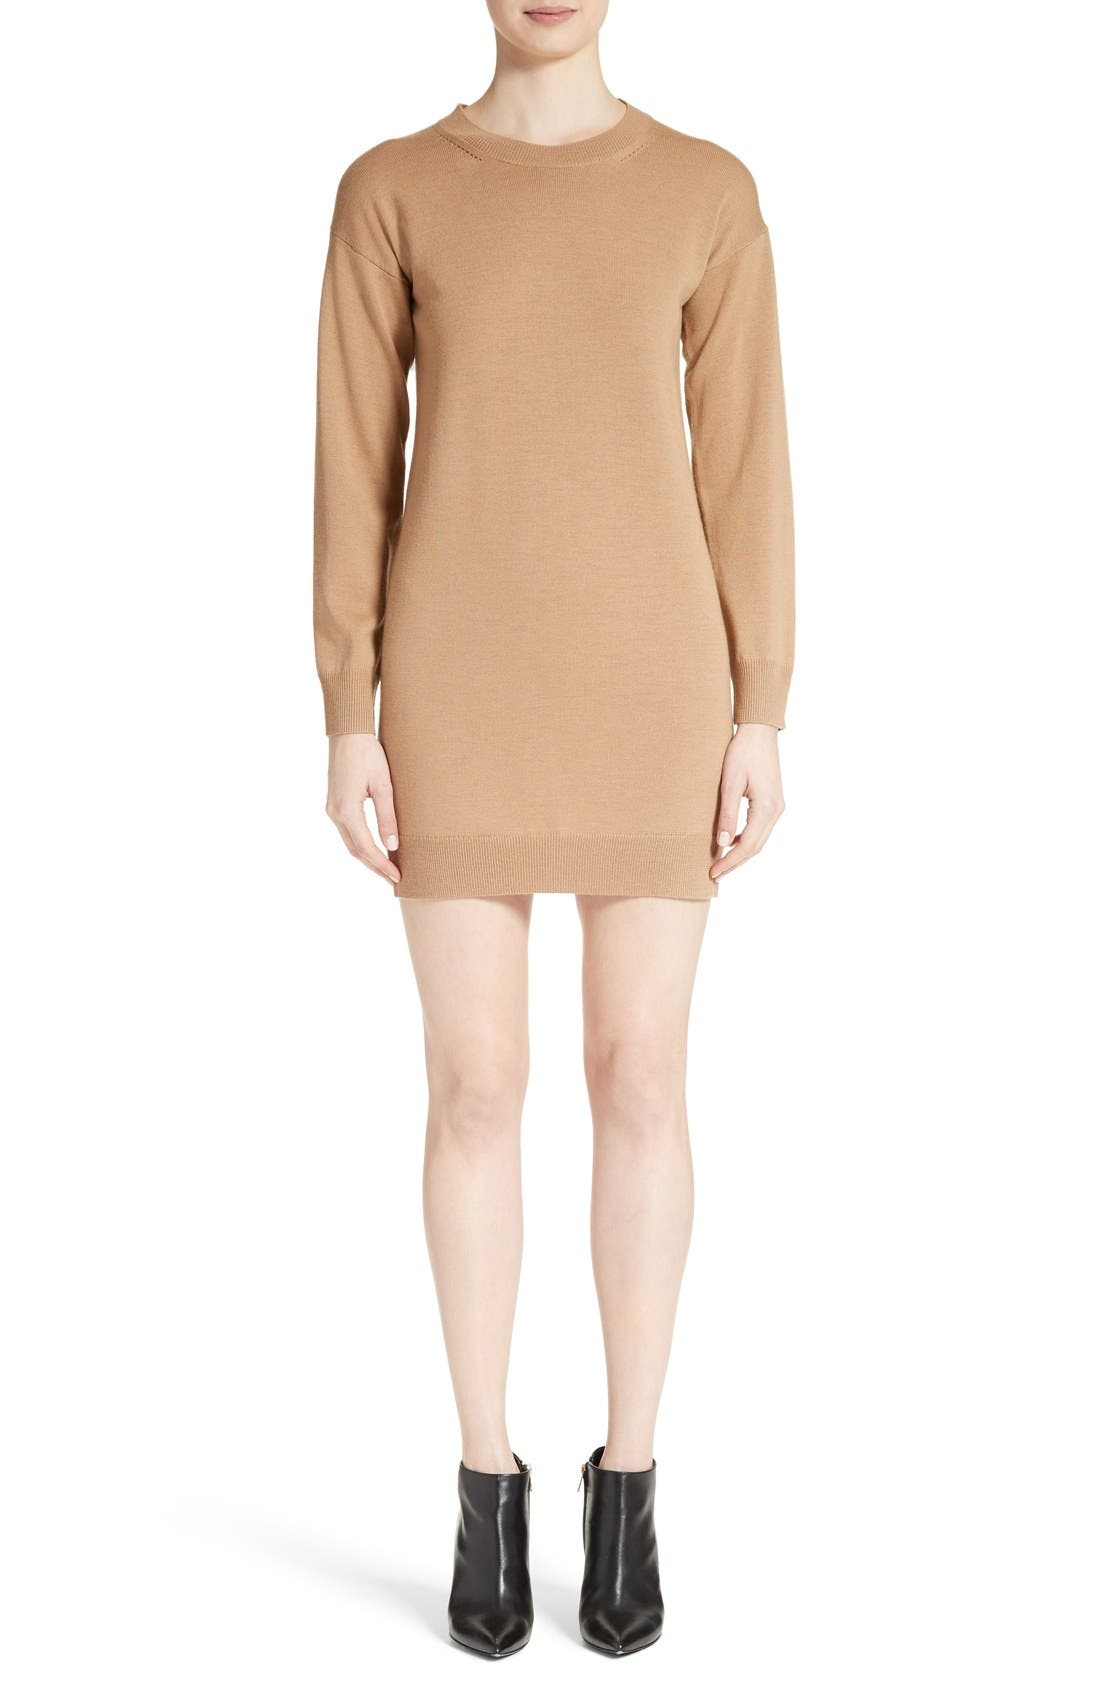 Alewater Elbow Patch Merino Wool Dress,                             Main thumbnail 1, color,                             Camel